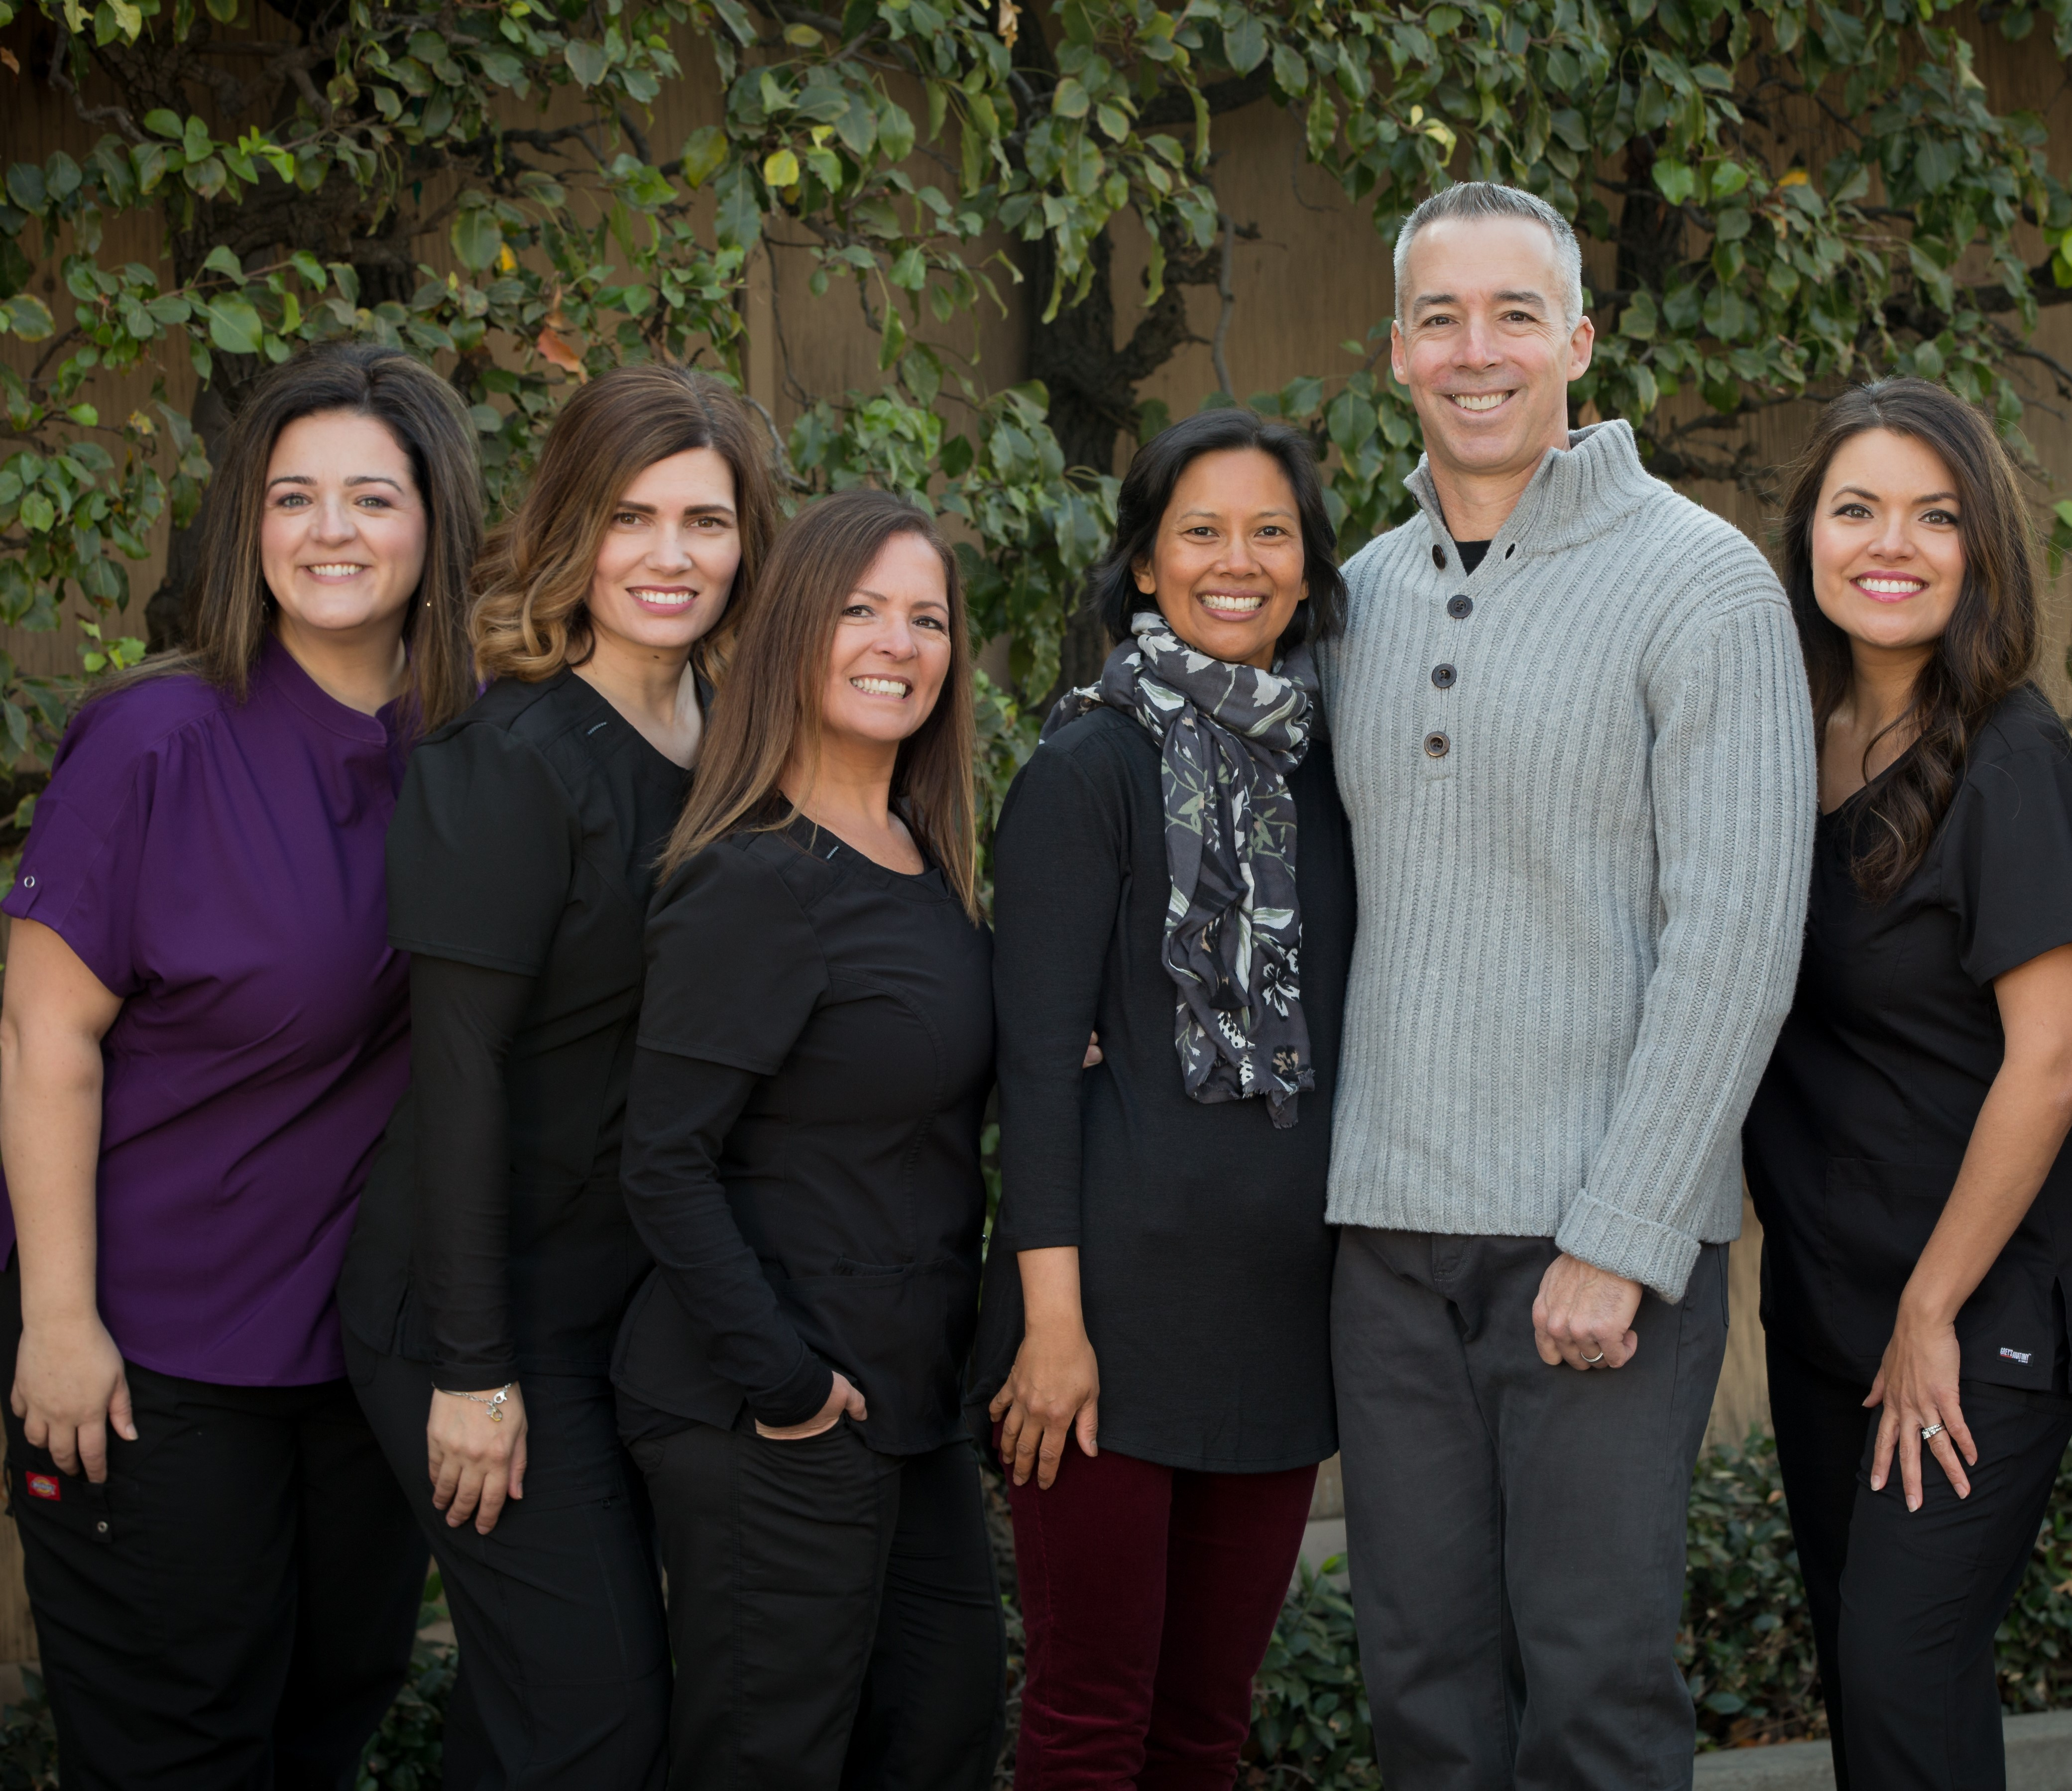 Christopher and Anne Thompson, DDS and their office staff